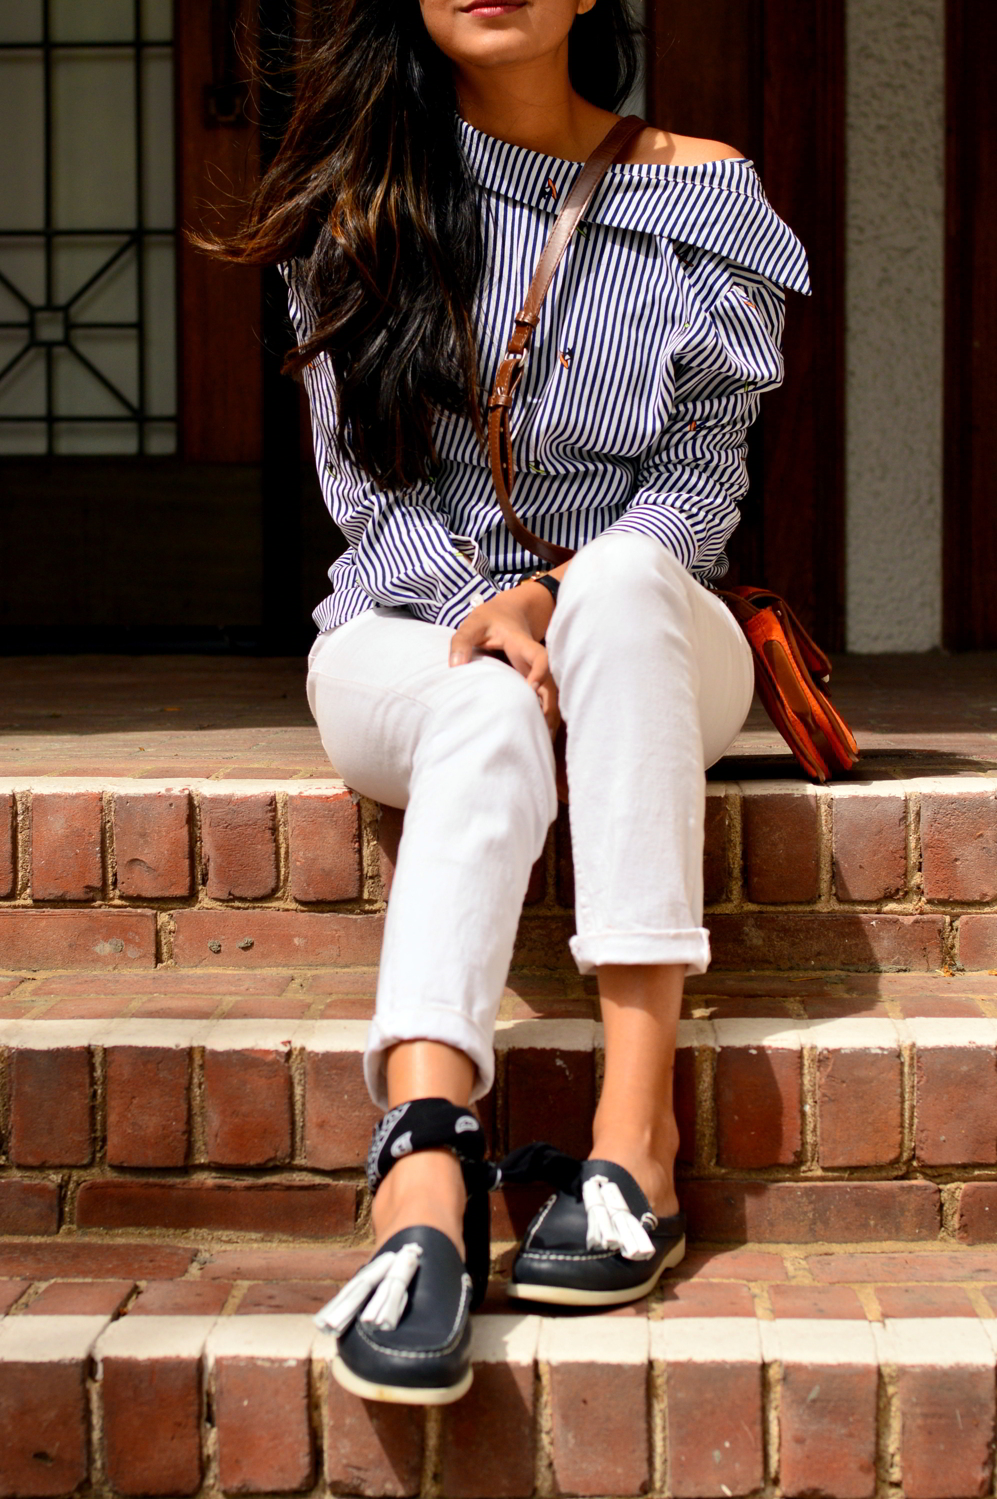 buttondown-shirt-backwards-nautical-vibes-loafers-slides-tassels-summer-spring-style-outfit-casual-blogger 7